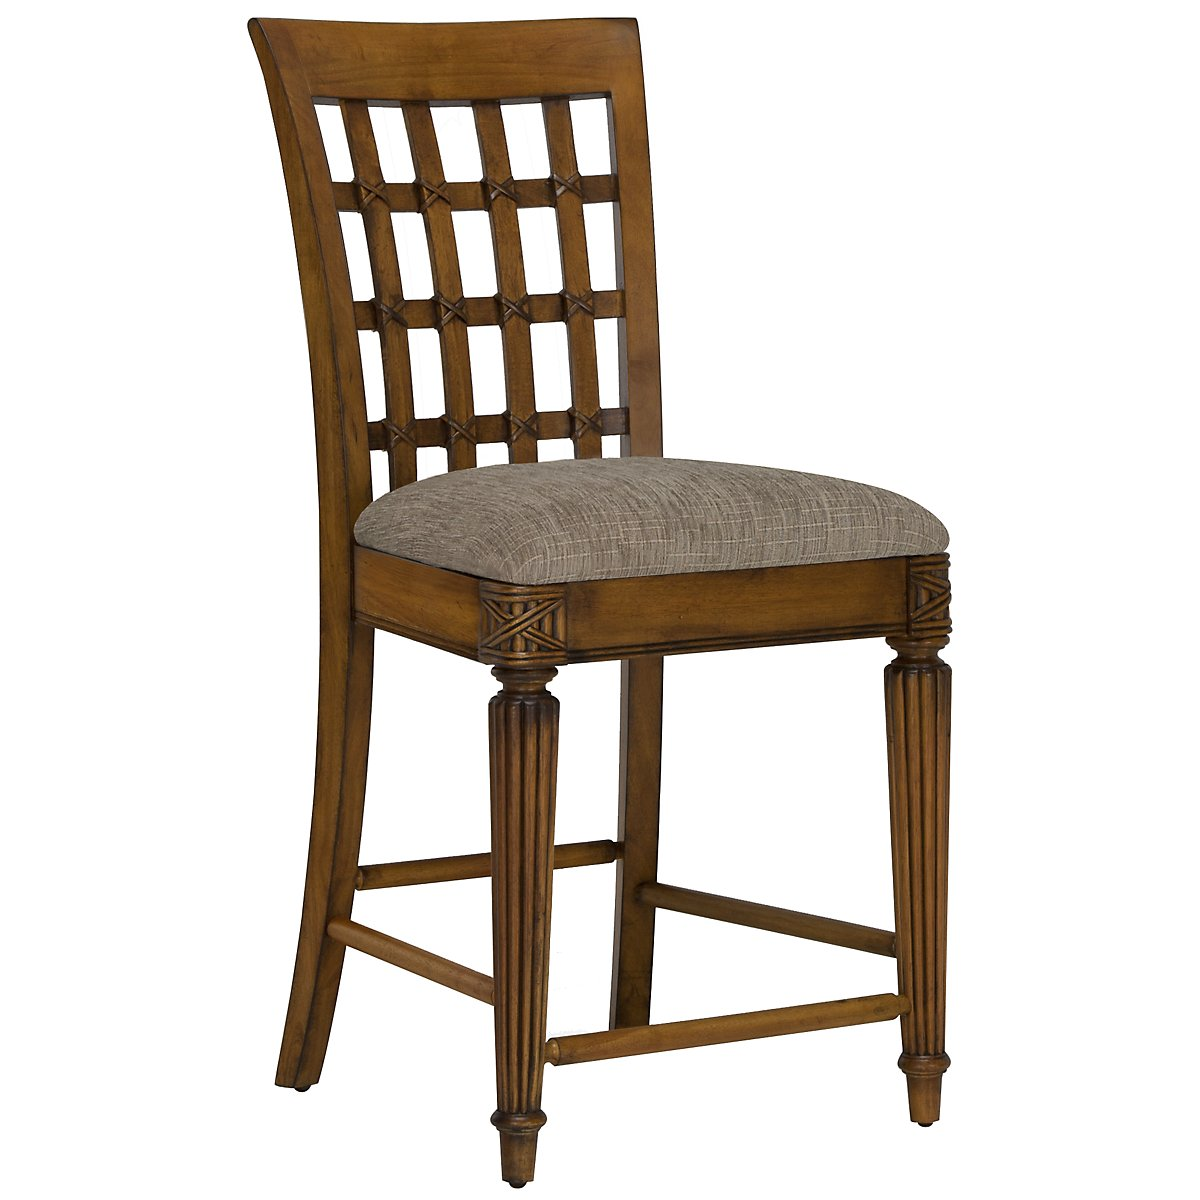 "Palm Mid Tone 24"" Wood Barstool"